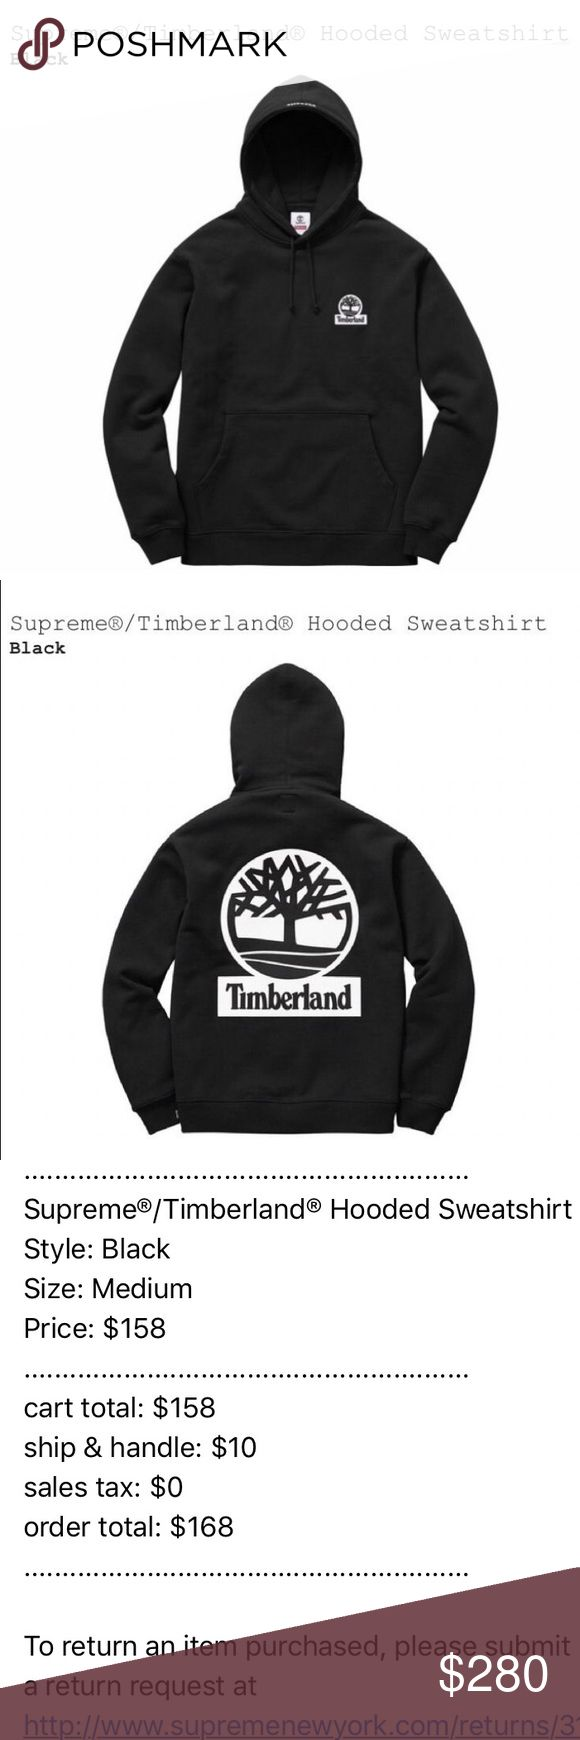 NWT Authentic Supreme x Timberland Hoodie Black This is SOLD OUT! Never been worn. It just came in the mail (will post photos when I get home from school in a week) Feel free to ask questions! This is a sick sweatshirt and a unique collab with timberland and for a great price. Supreme Sweaters